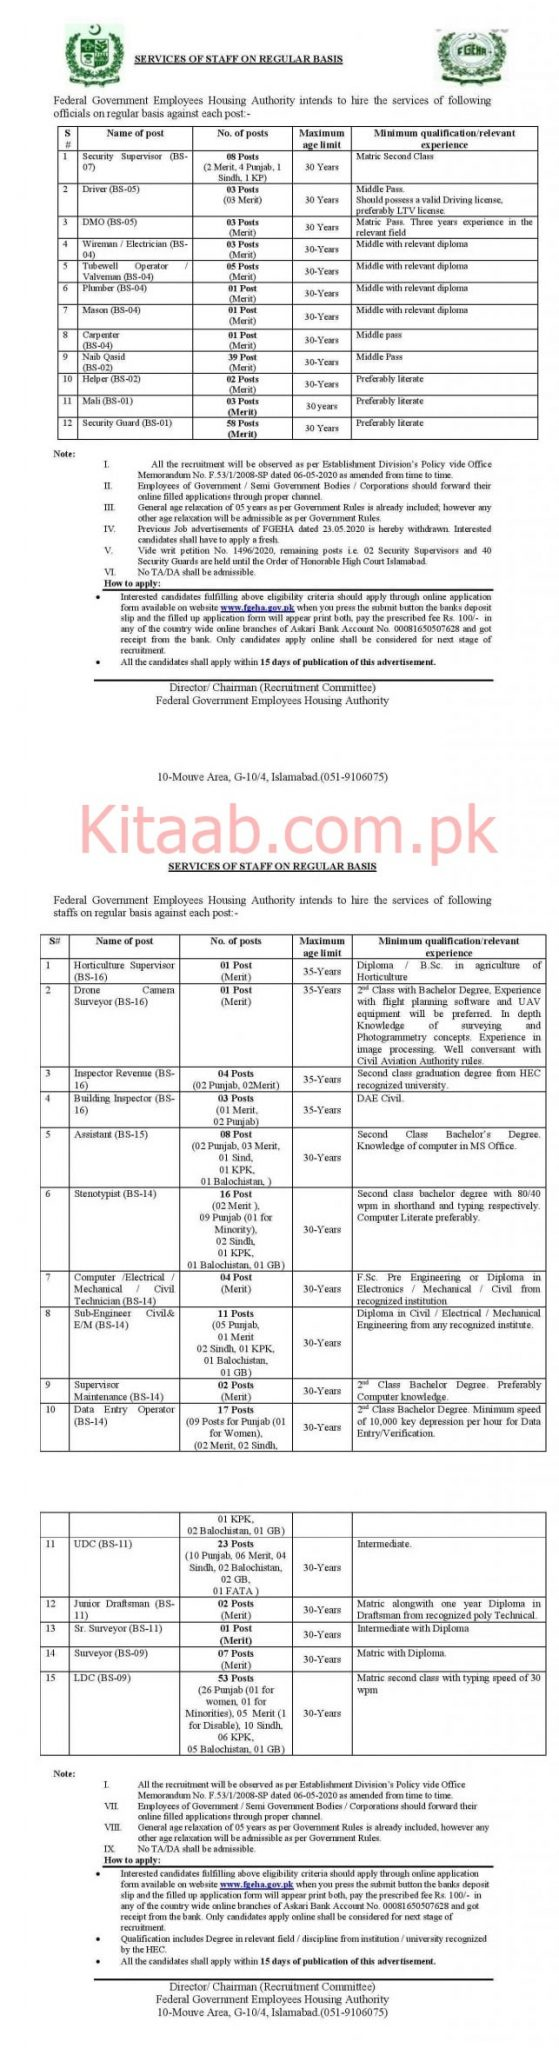 Federal Government Employees Housing Authority FGEHA Jobs 2021 Online Apply Eligibility Criteria